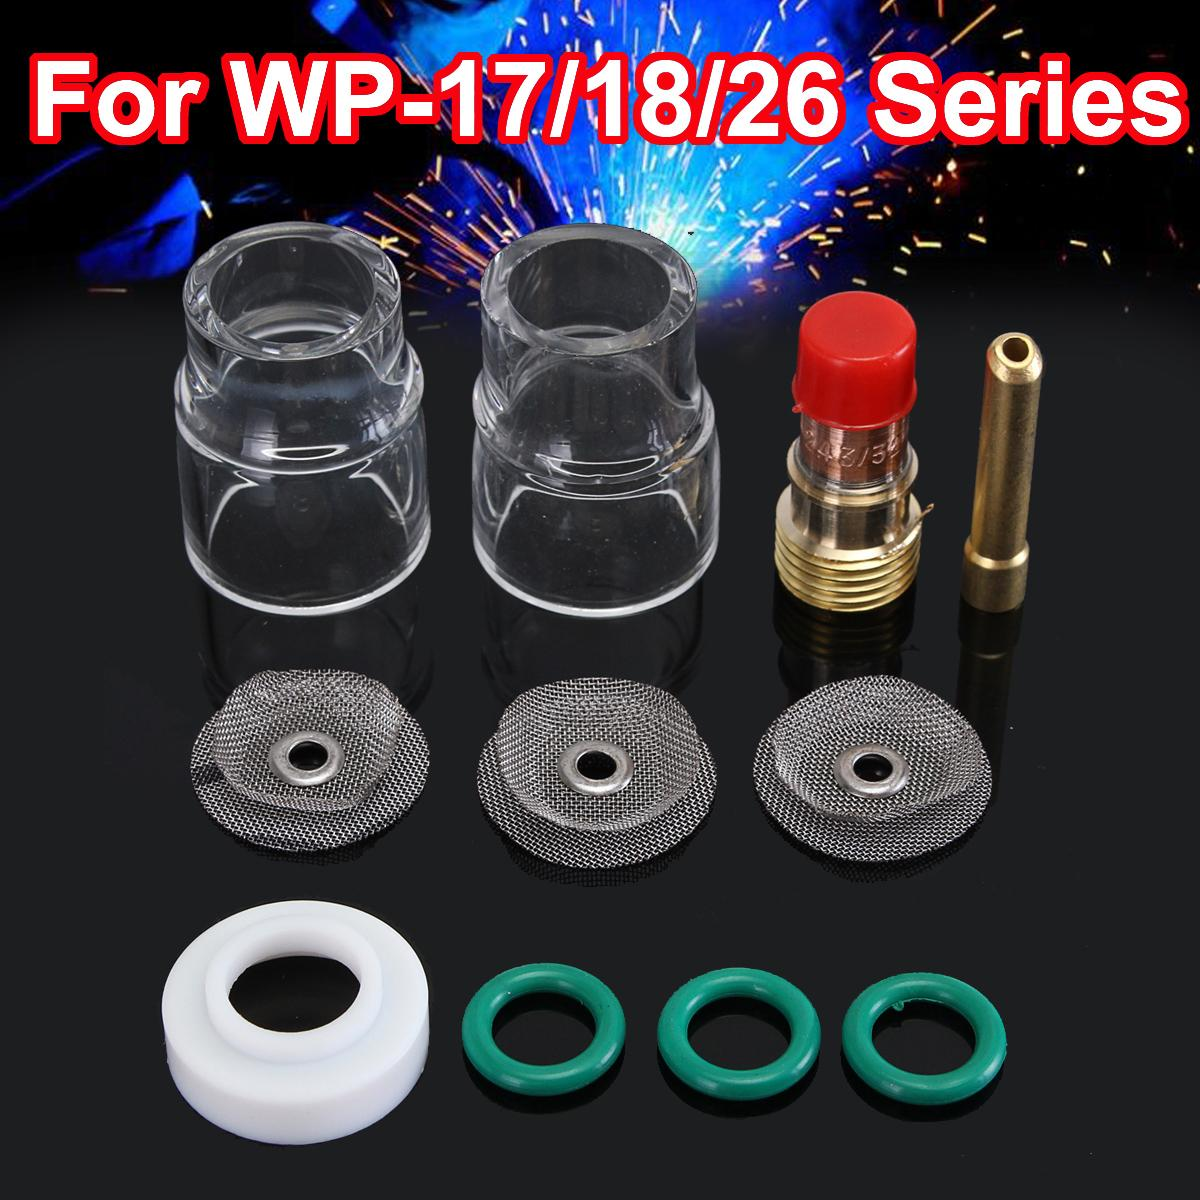 11pcs TIG Welding Torch Stubby Gas Lens Pyrex Cup Accessories Kit Tools For WP-17/18/26 Torches Gas Lens 3/32 Welding Working 18 pk tig torch large gas lens wp 9 20 25 wp tungsten 0 04 1 16 3 32